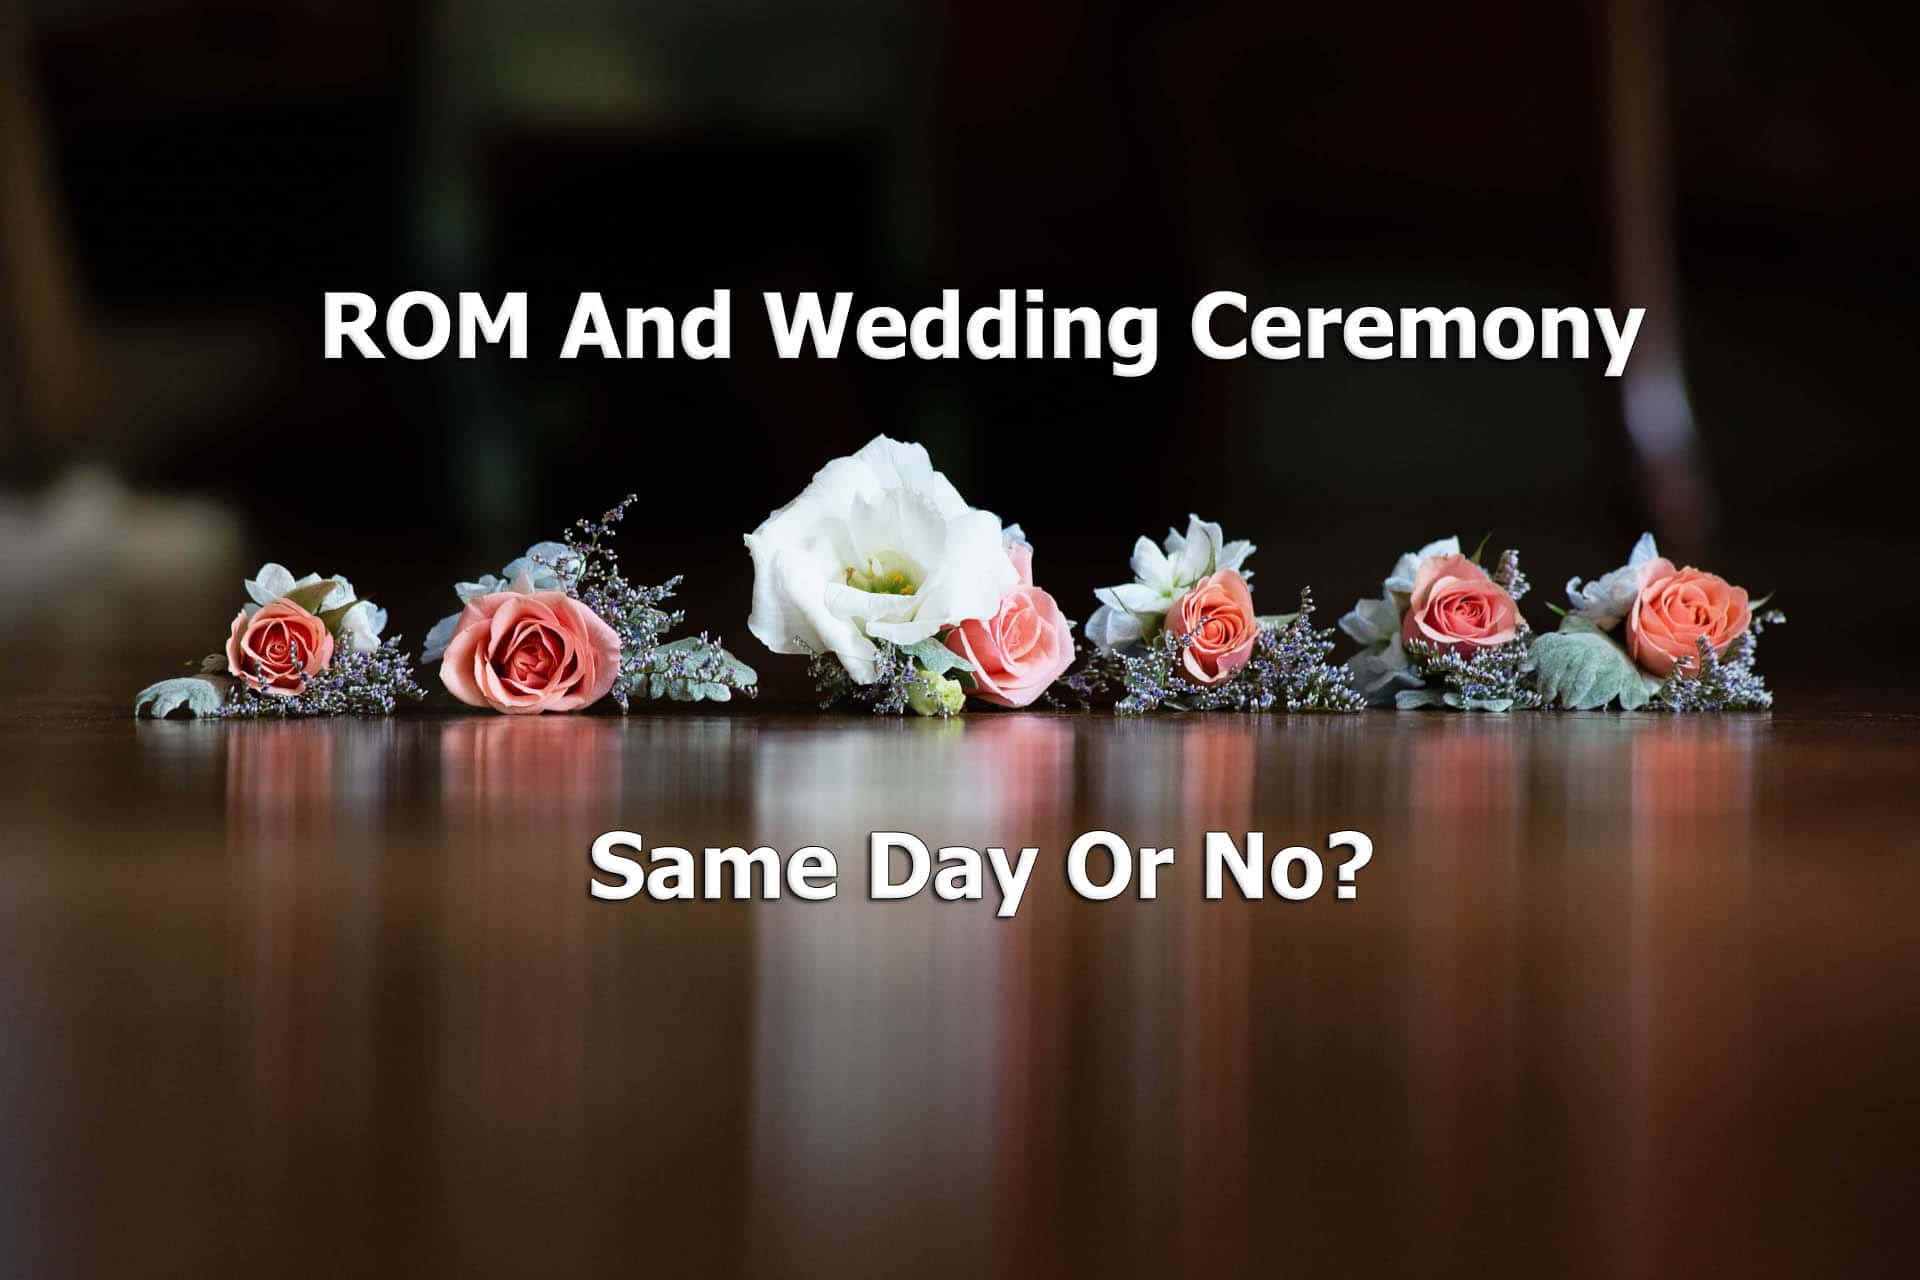 ROM and Wedding Ceremony On The Same Day?